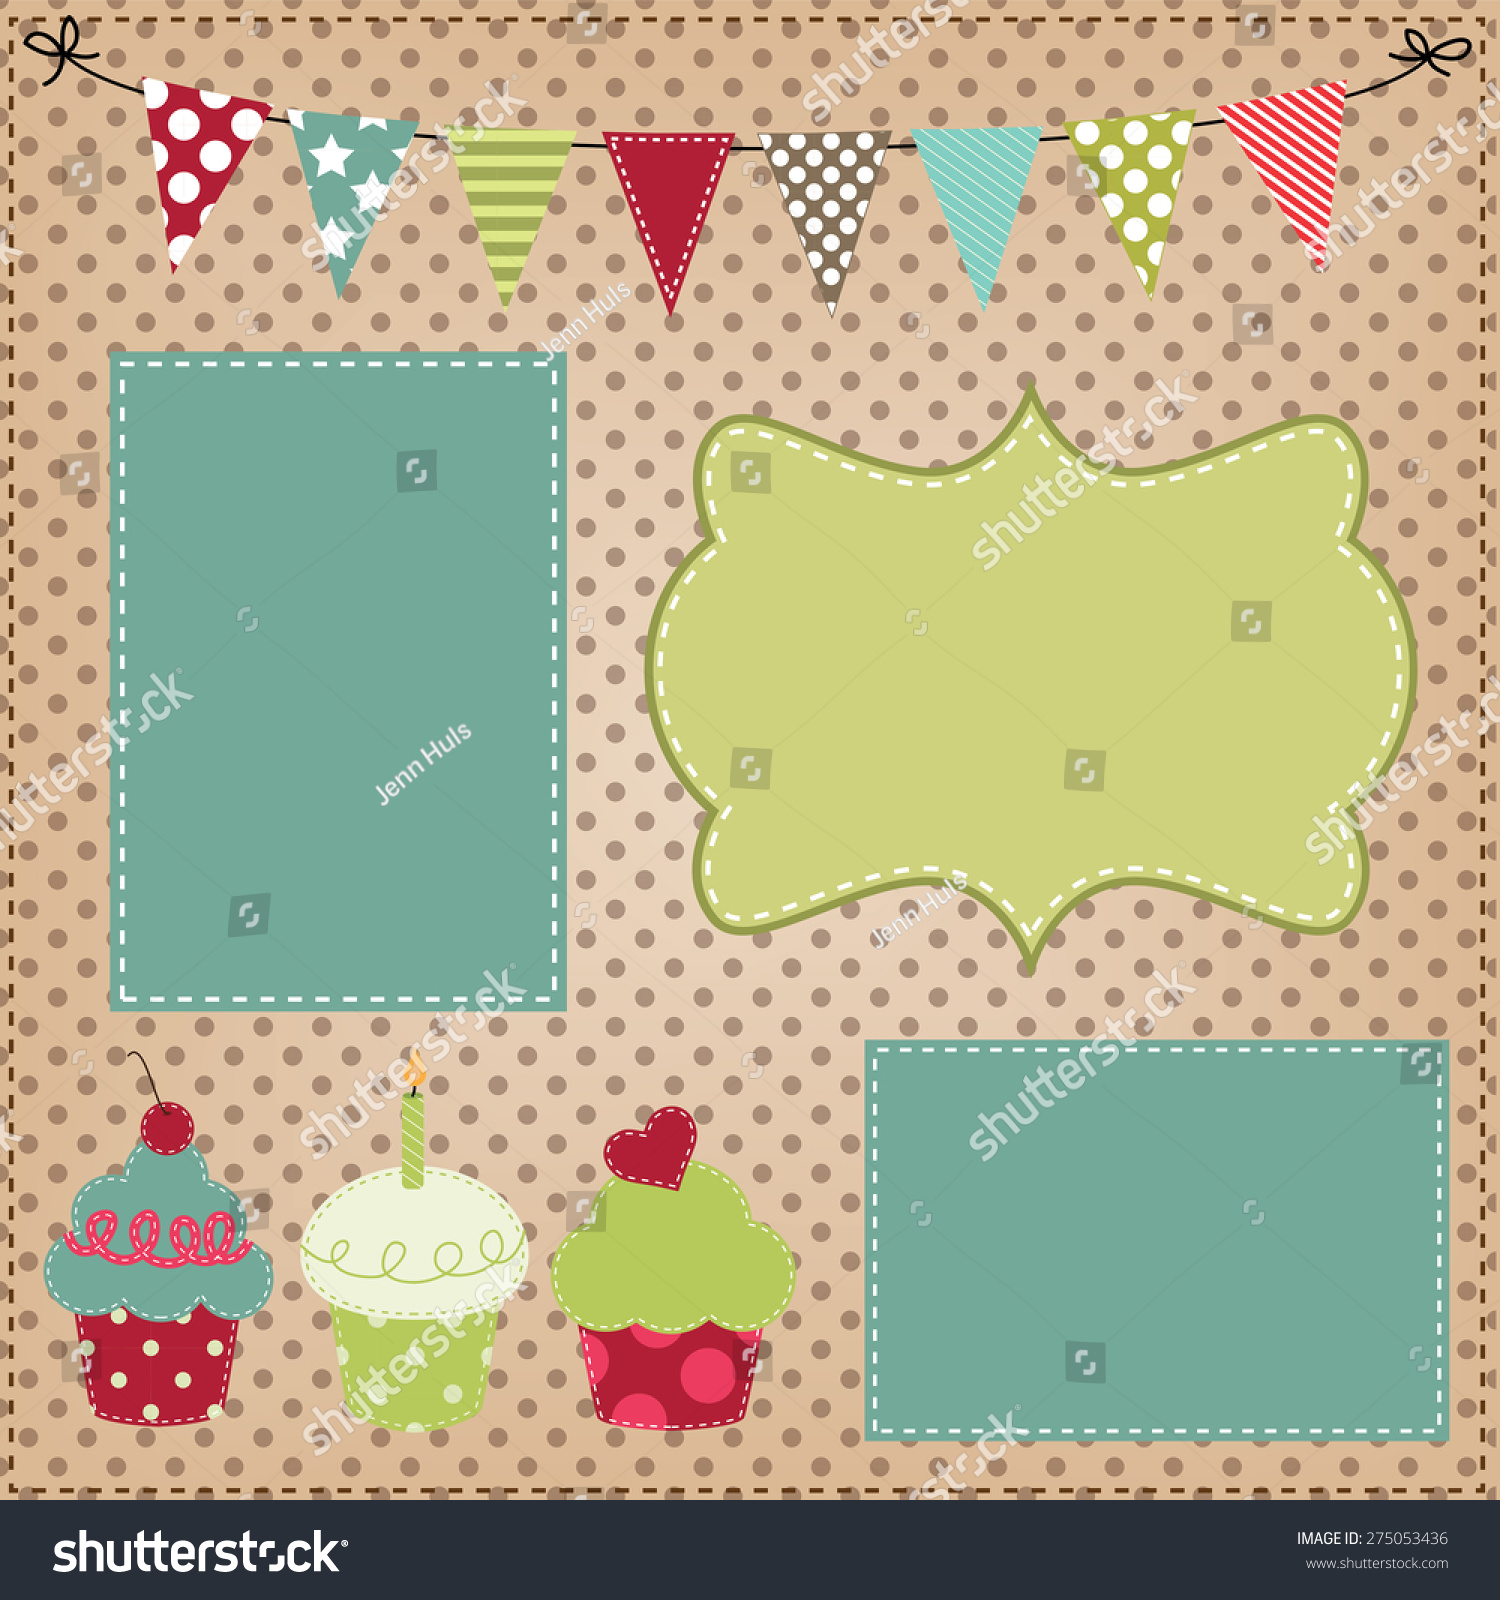 birthday party templates for microsoft word